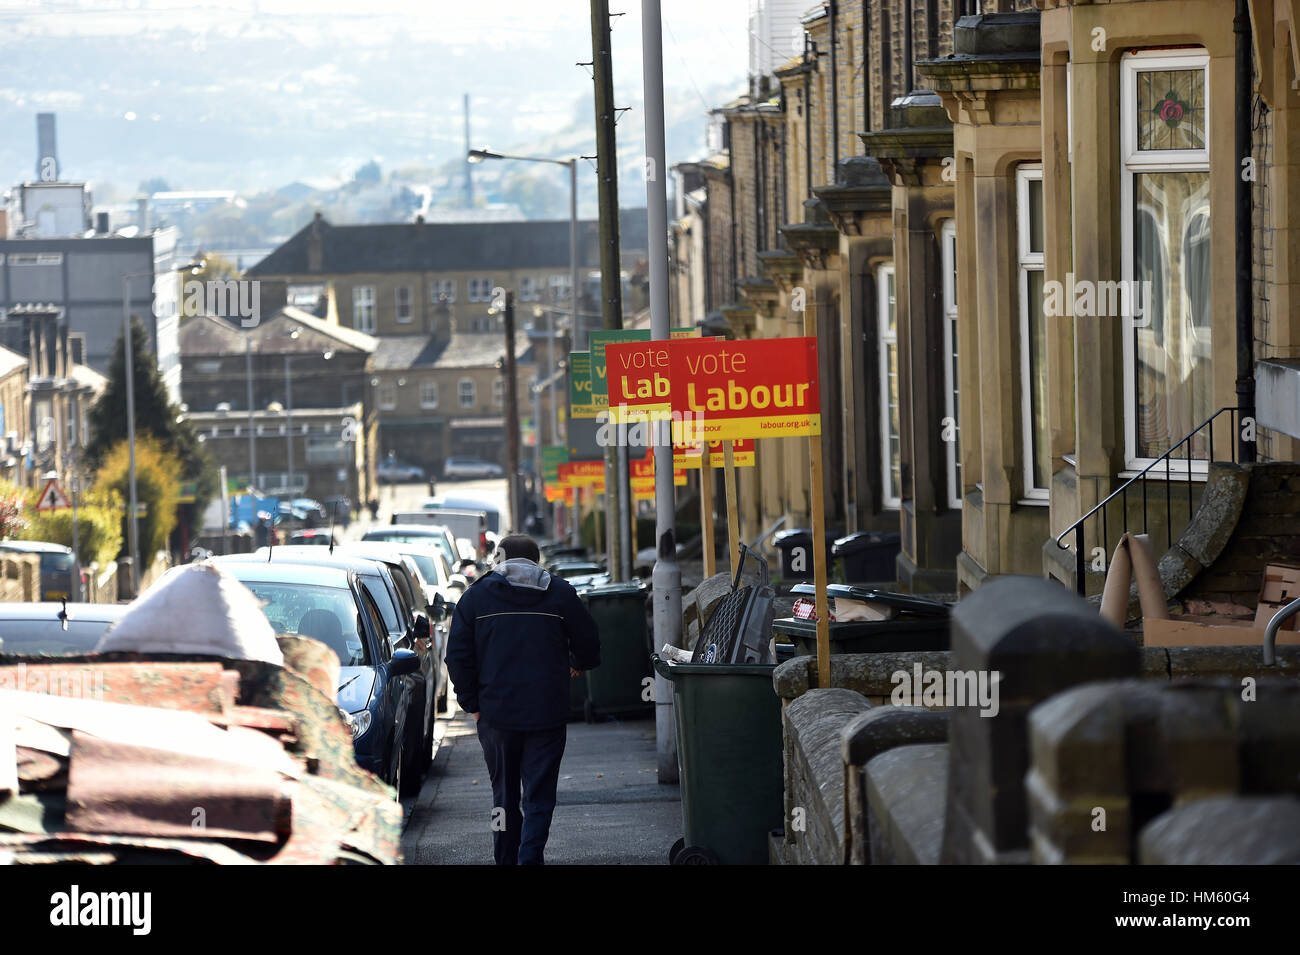 Election signs displayed in Keighley, West Yorkshire - Stock Image